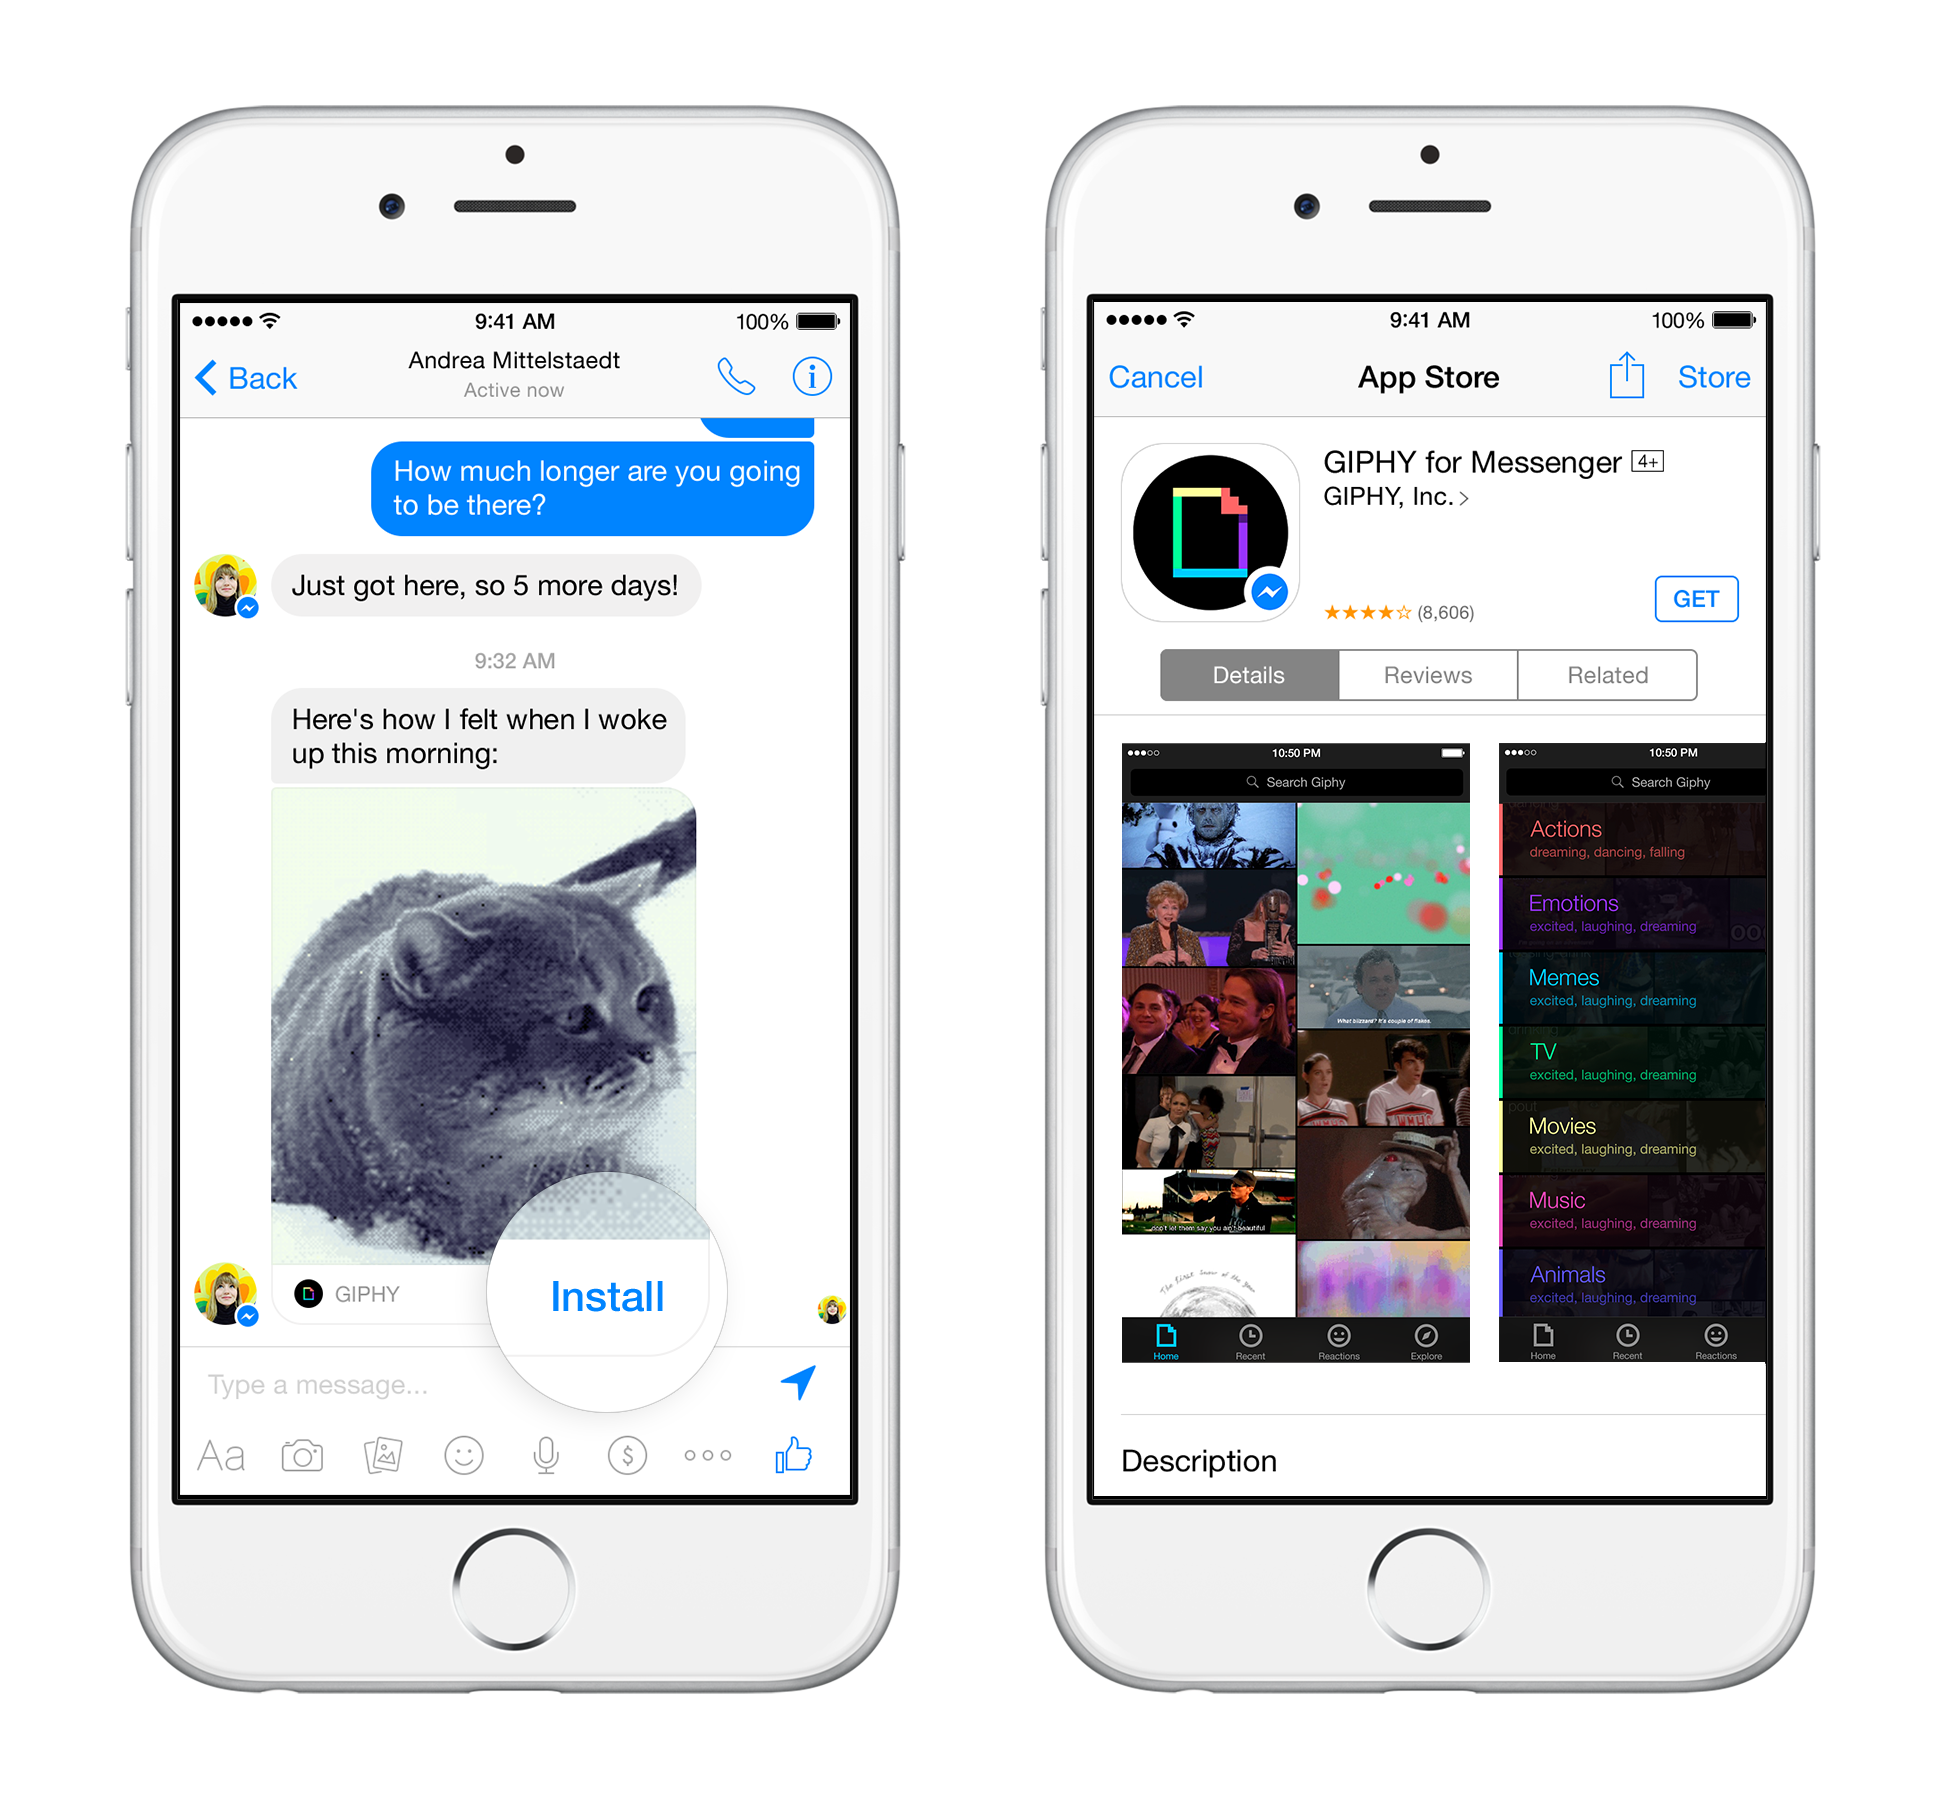 Forget the stickers: iOS 10 turned iMessage into a platform, and